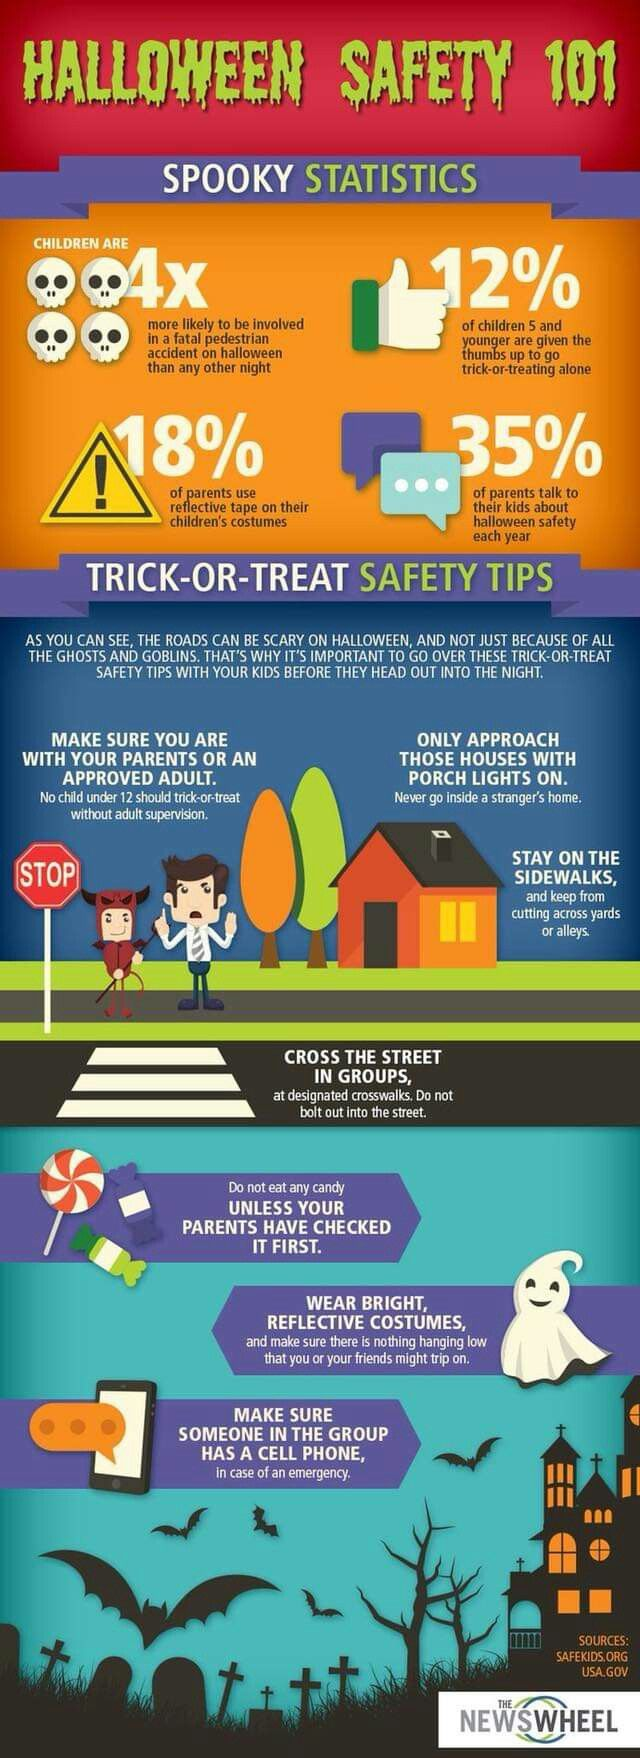 Pin by Gabby Summers on safe things Halloween safety